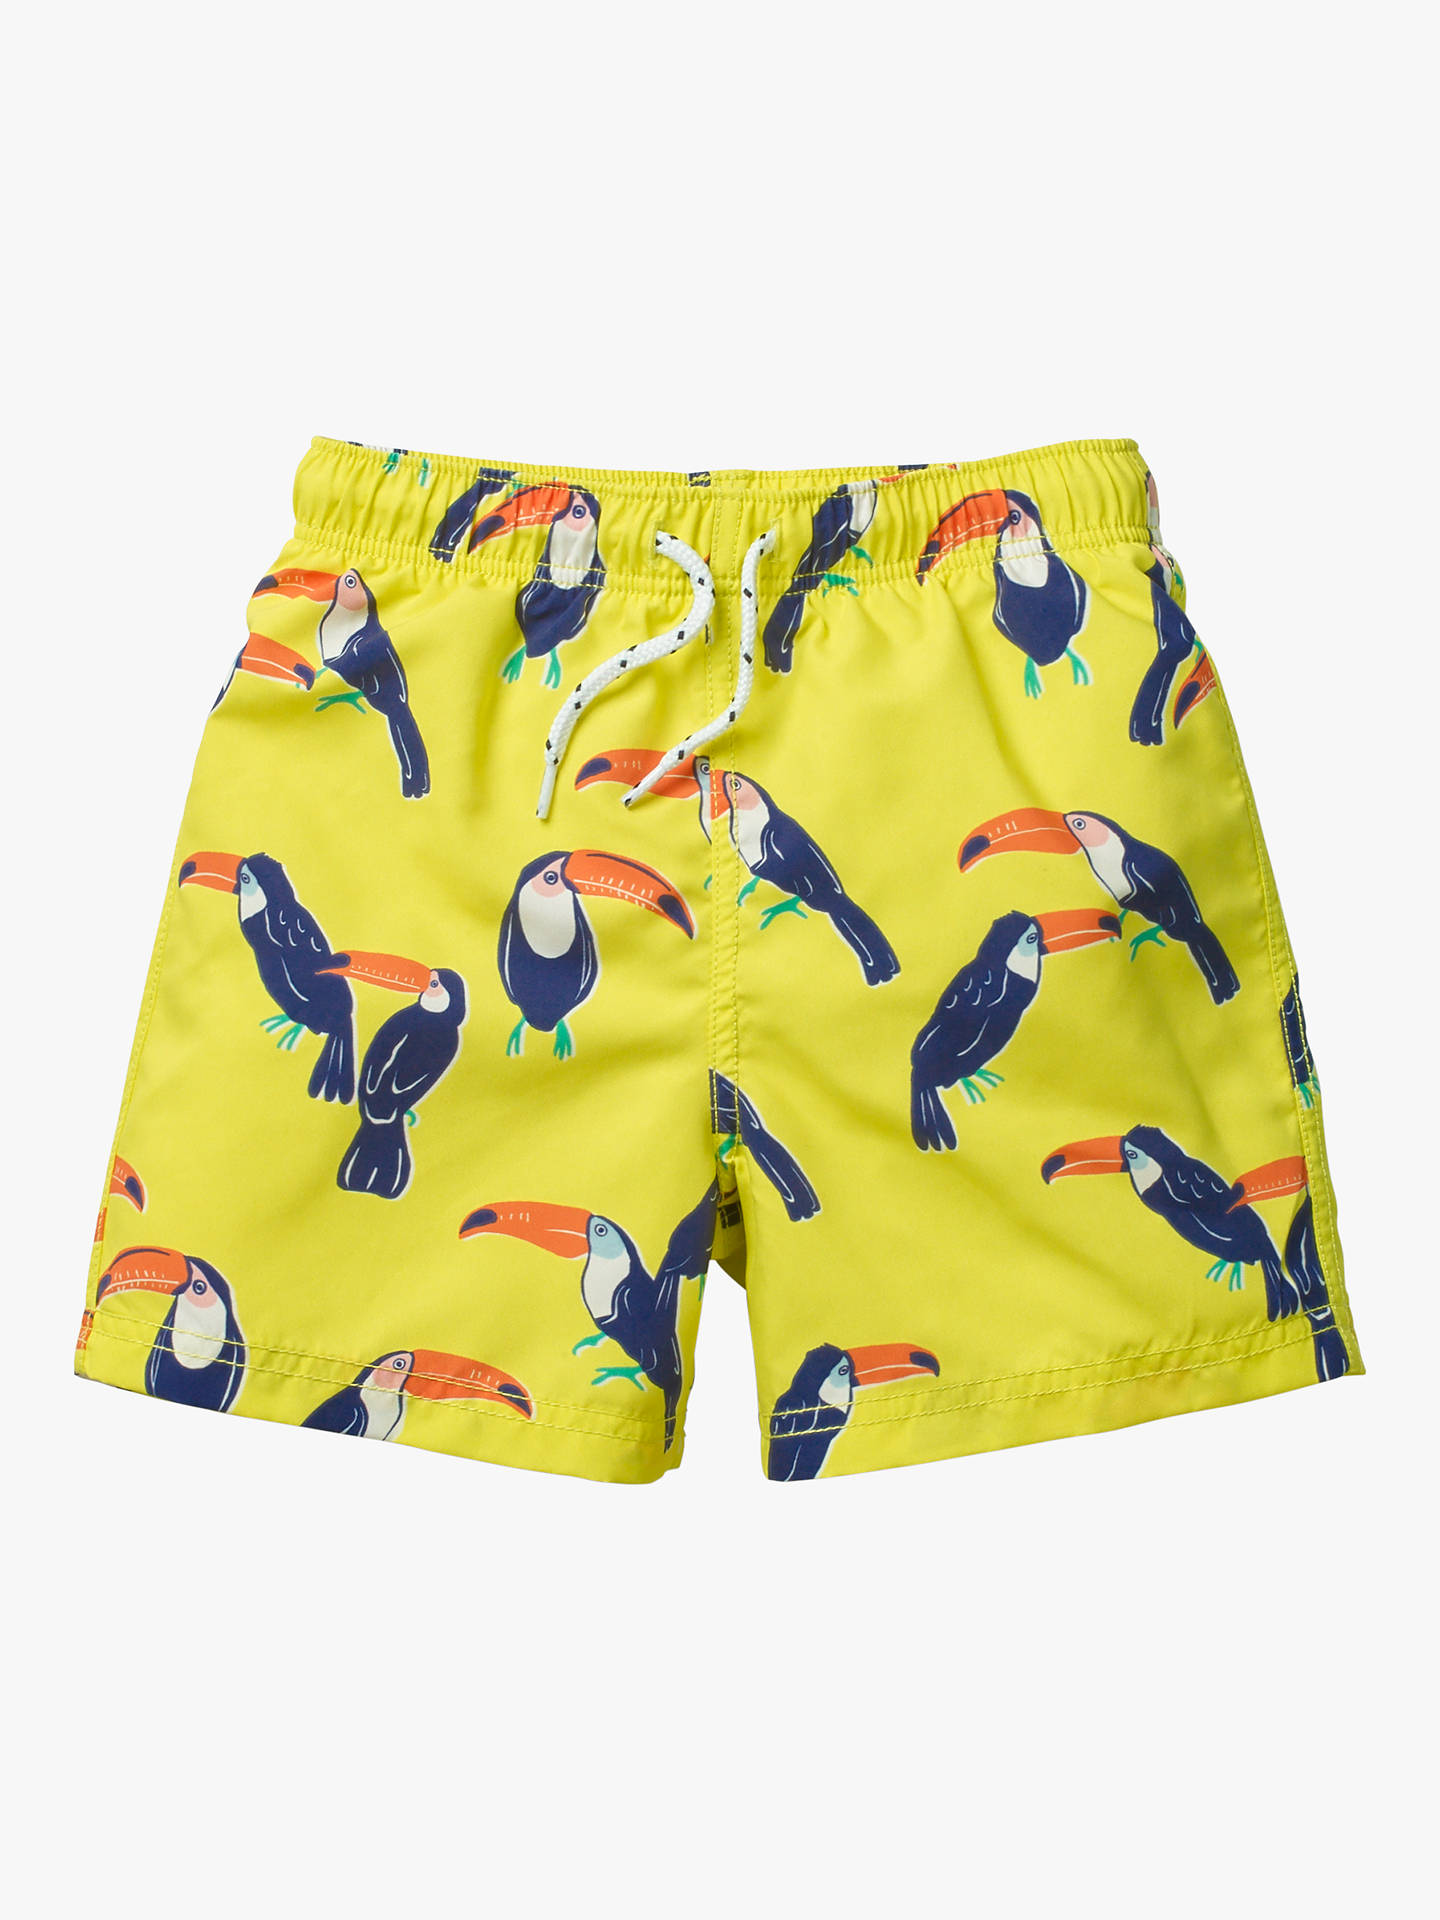 ed1829a4a4625 ... Buy Mini Boden Boys' Bathers Swimming Shorts, Yellow Toucans, 2-3 years  ...